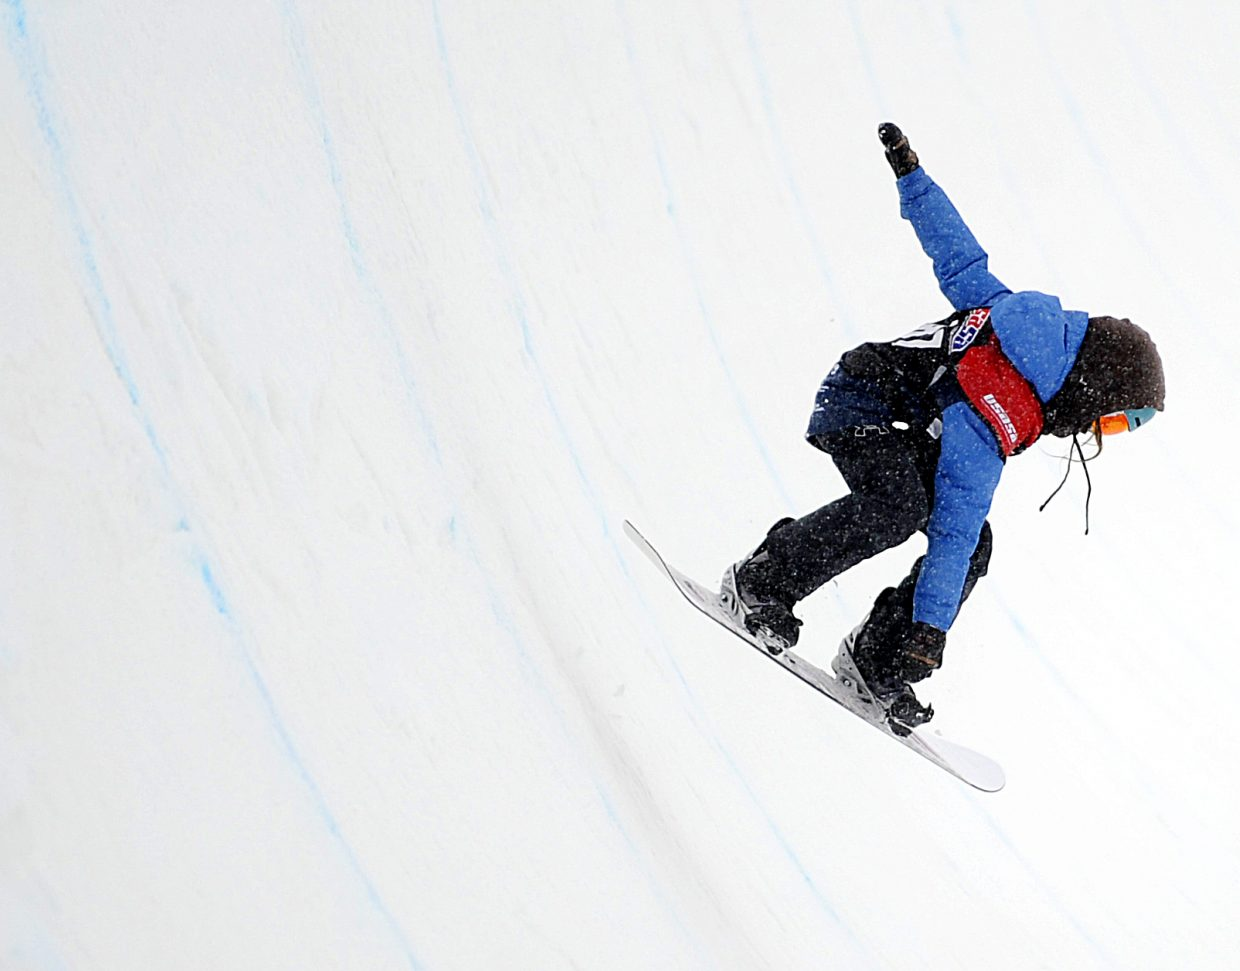 Team Summit's Alyssa Moroco, 12, competes in the United States of America Snowboard and Freeski Association Halfpipe at Steamboat Resort on Saturday, March 2. The competition also included a rail jam that night and a slopestyle competition on Sunday that was hosted by the Steamboat Springs Winter Sports Club.